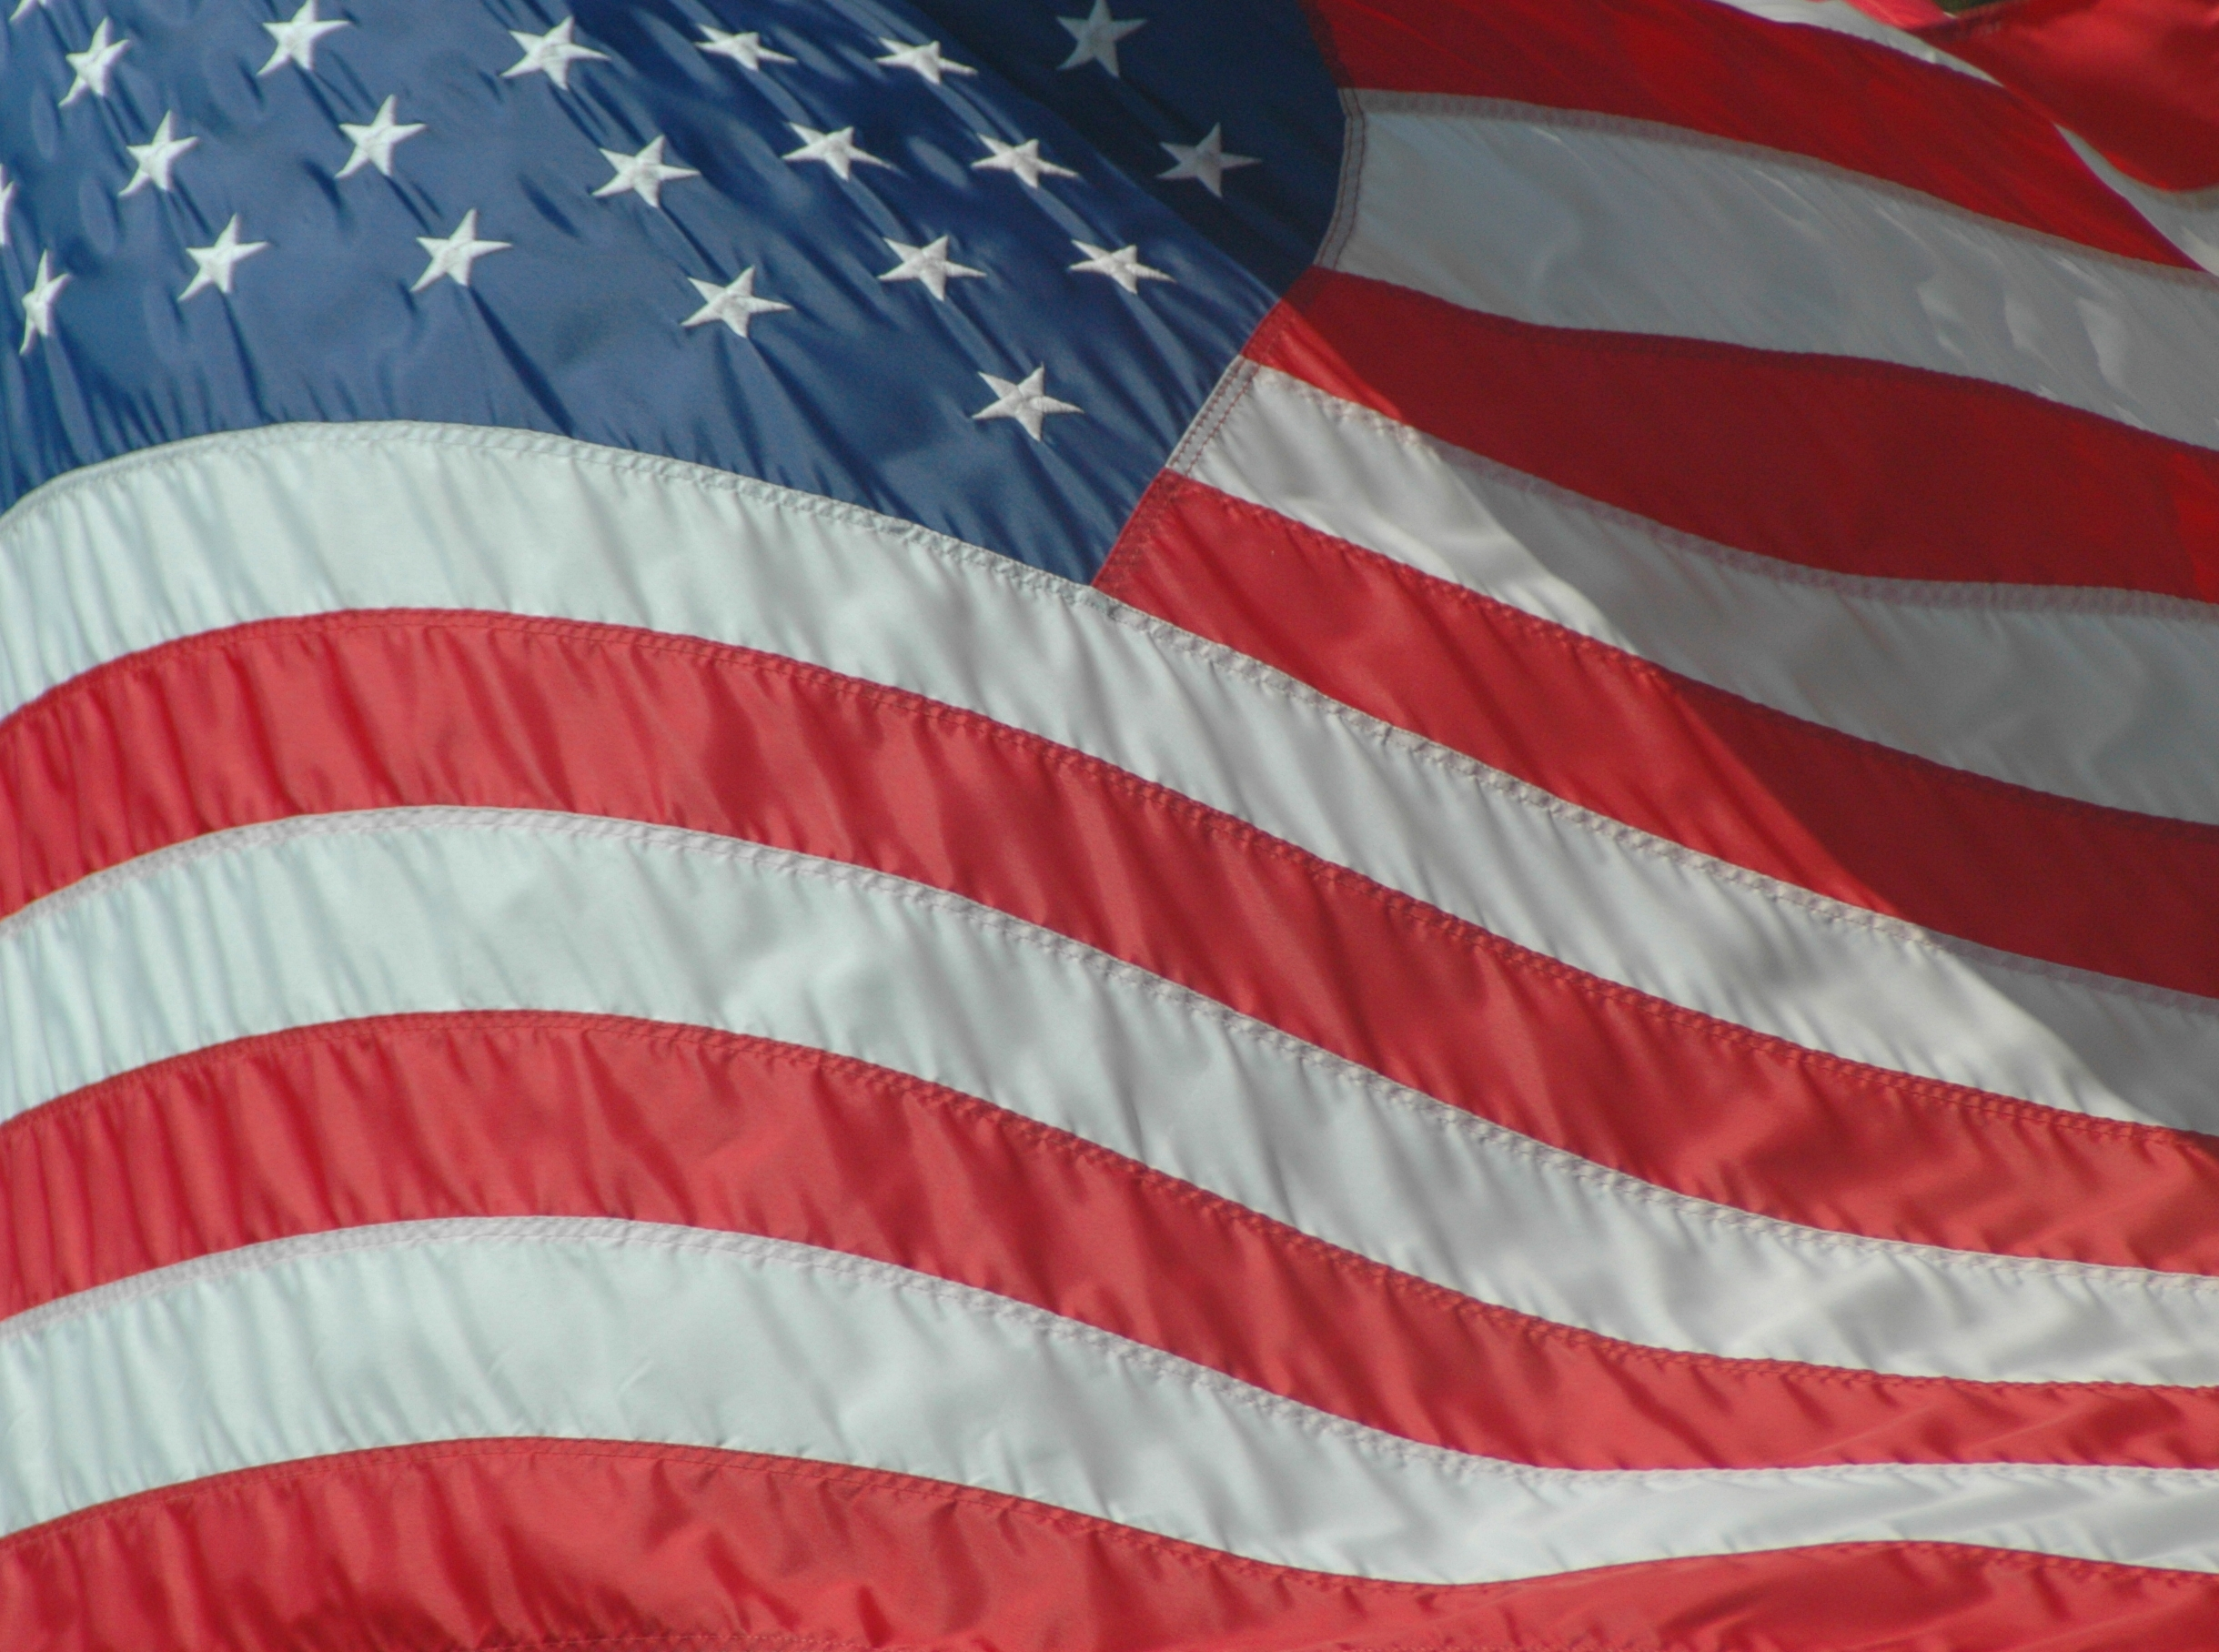 patriotic crafts and ideas president s day facts how to make patriotic 2439x1816